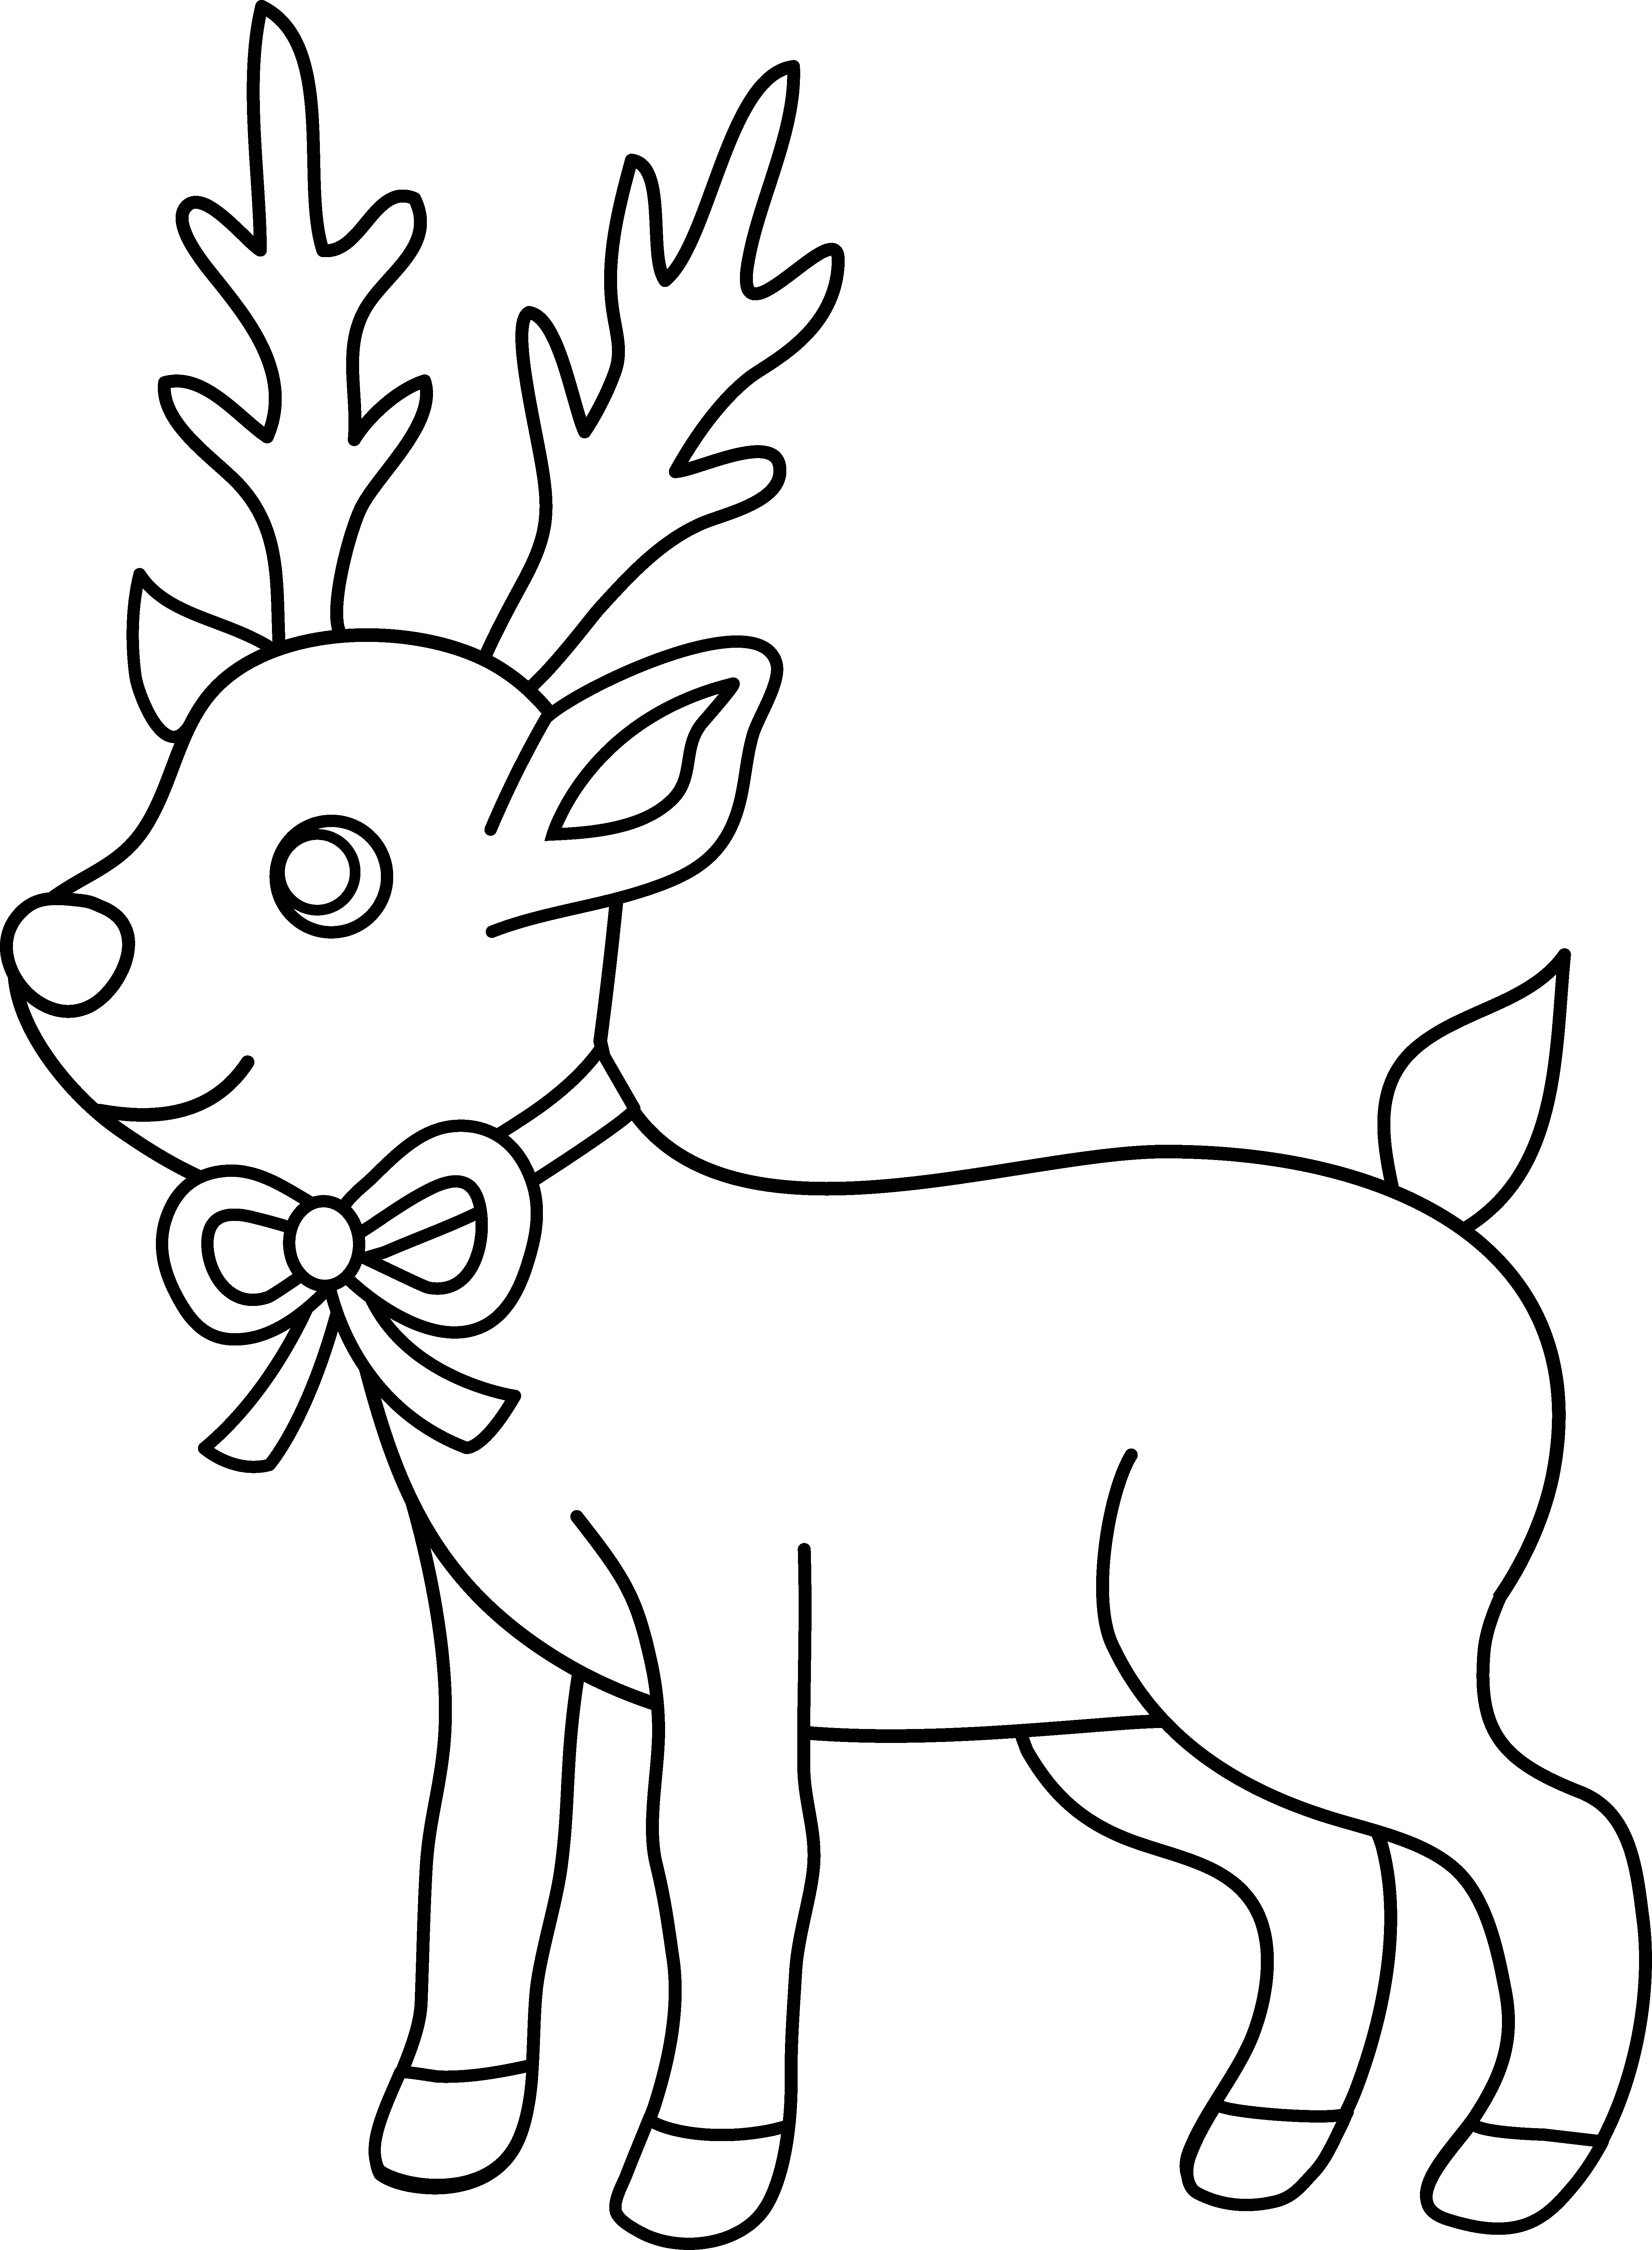 christmas coloring pages reindeer 30 free reindeer coloring pages printable christmas coloring reindeer pages